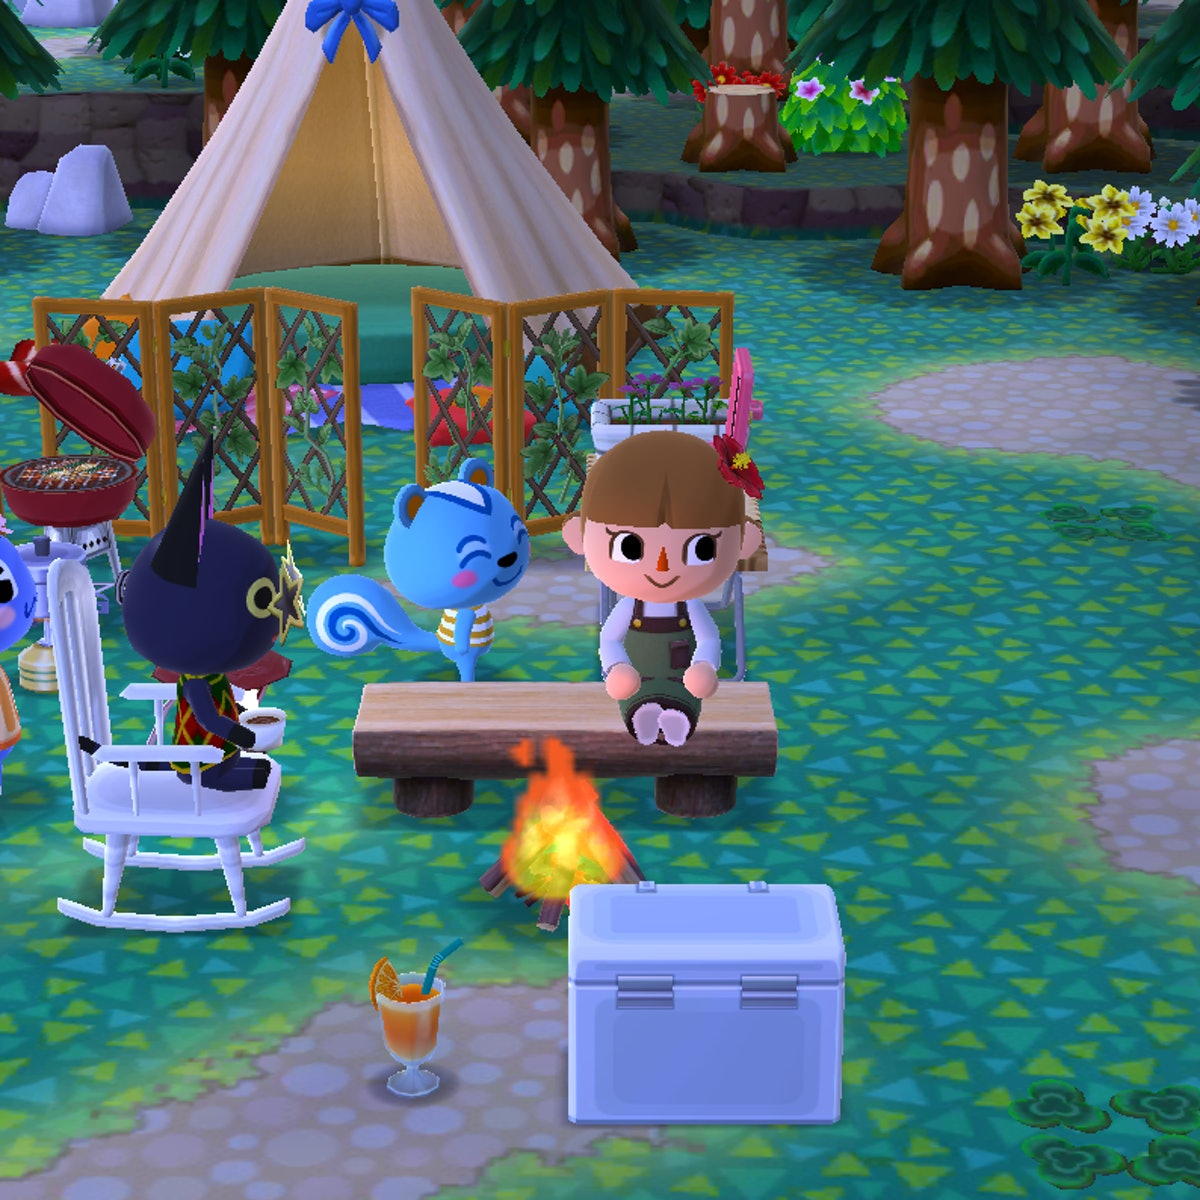 A screenshot of 'Animal Crossing: Pocket Camp' shows a brown-haired girl and two animals sitting next to a fire in her campsite.